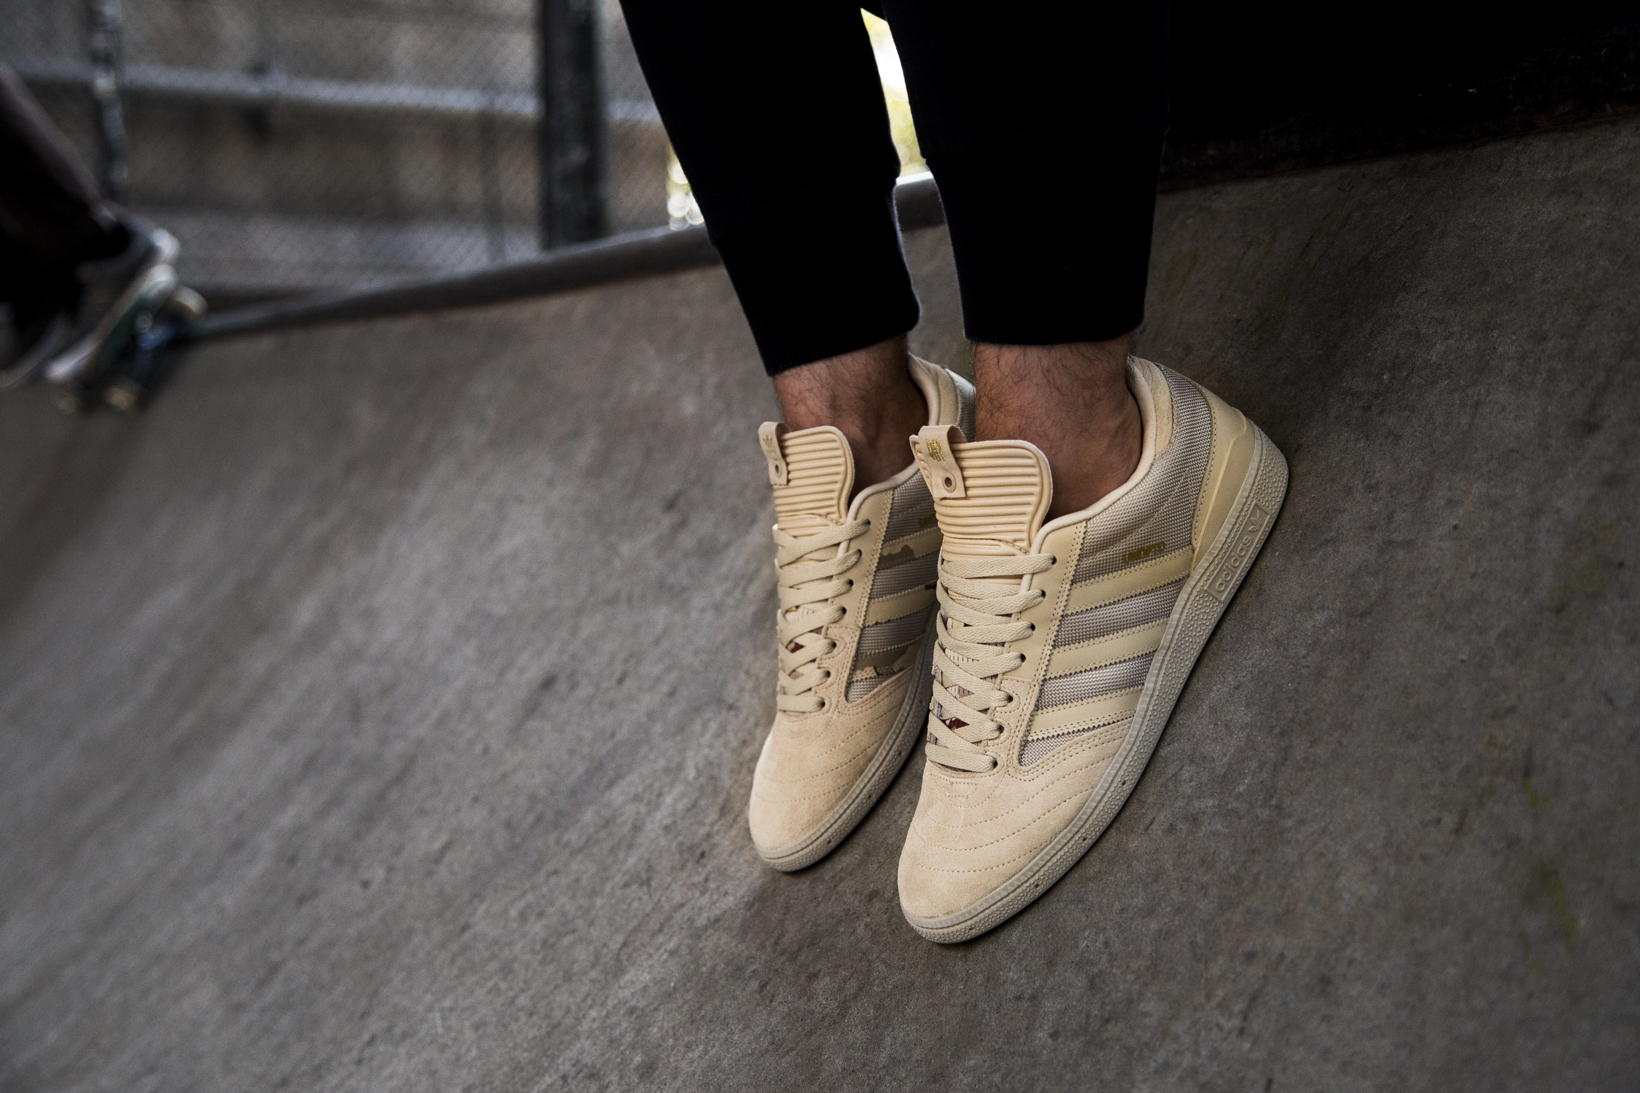 A Closer Look at the UNDEFEATED x adidas Consortium Busenitz